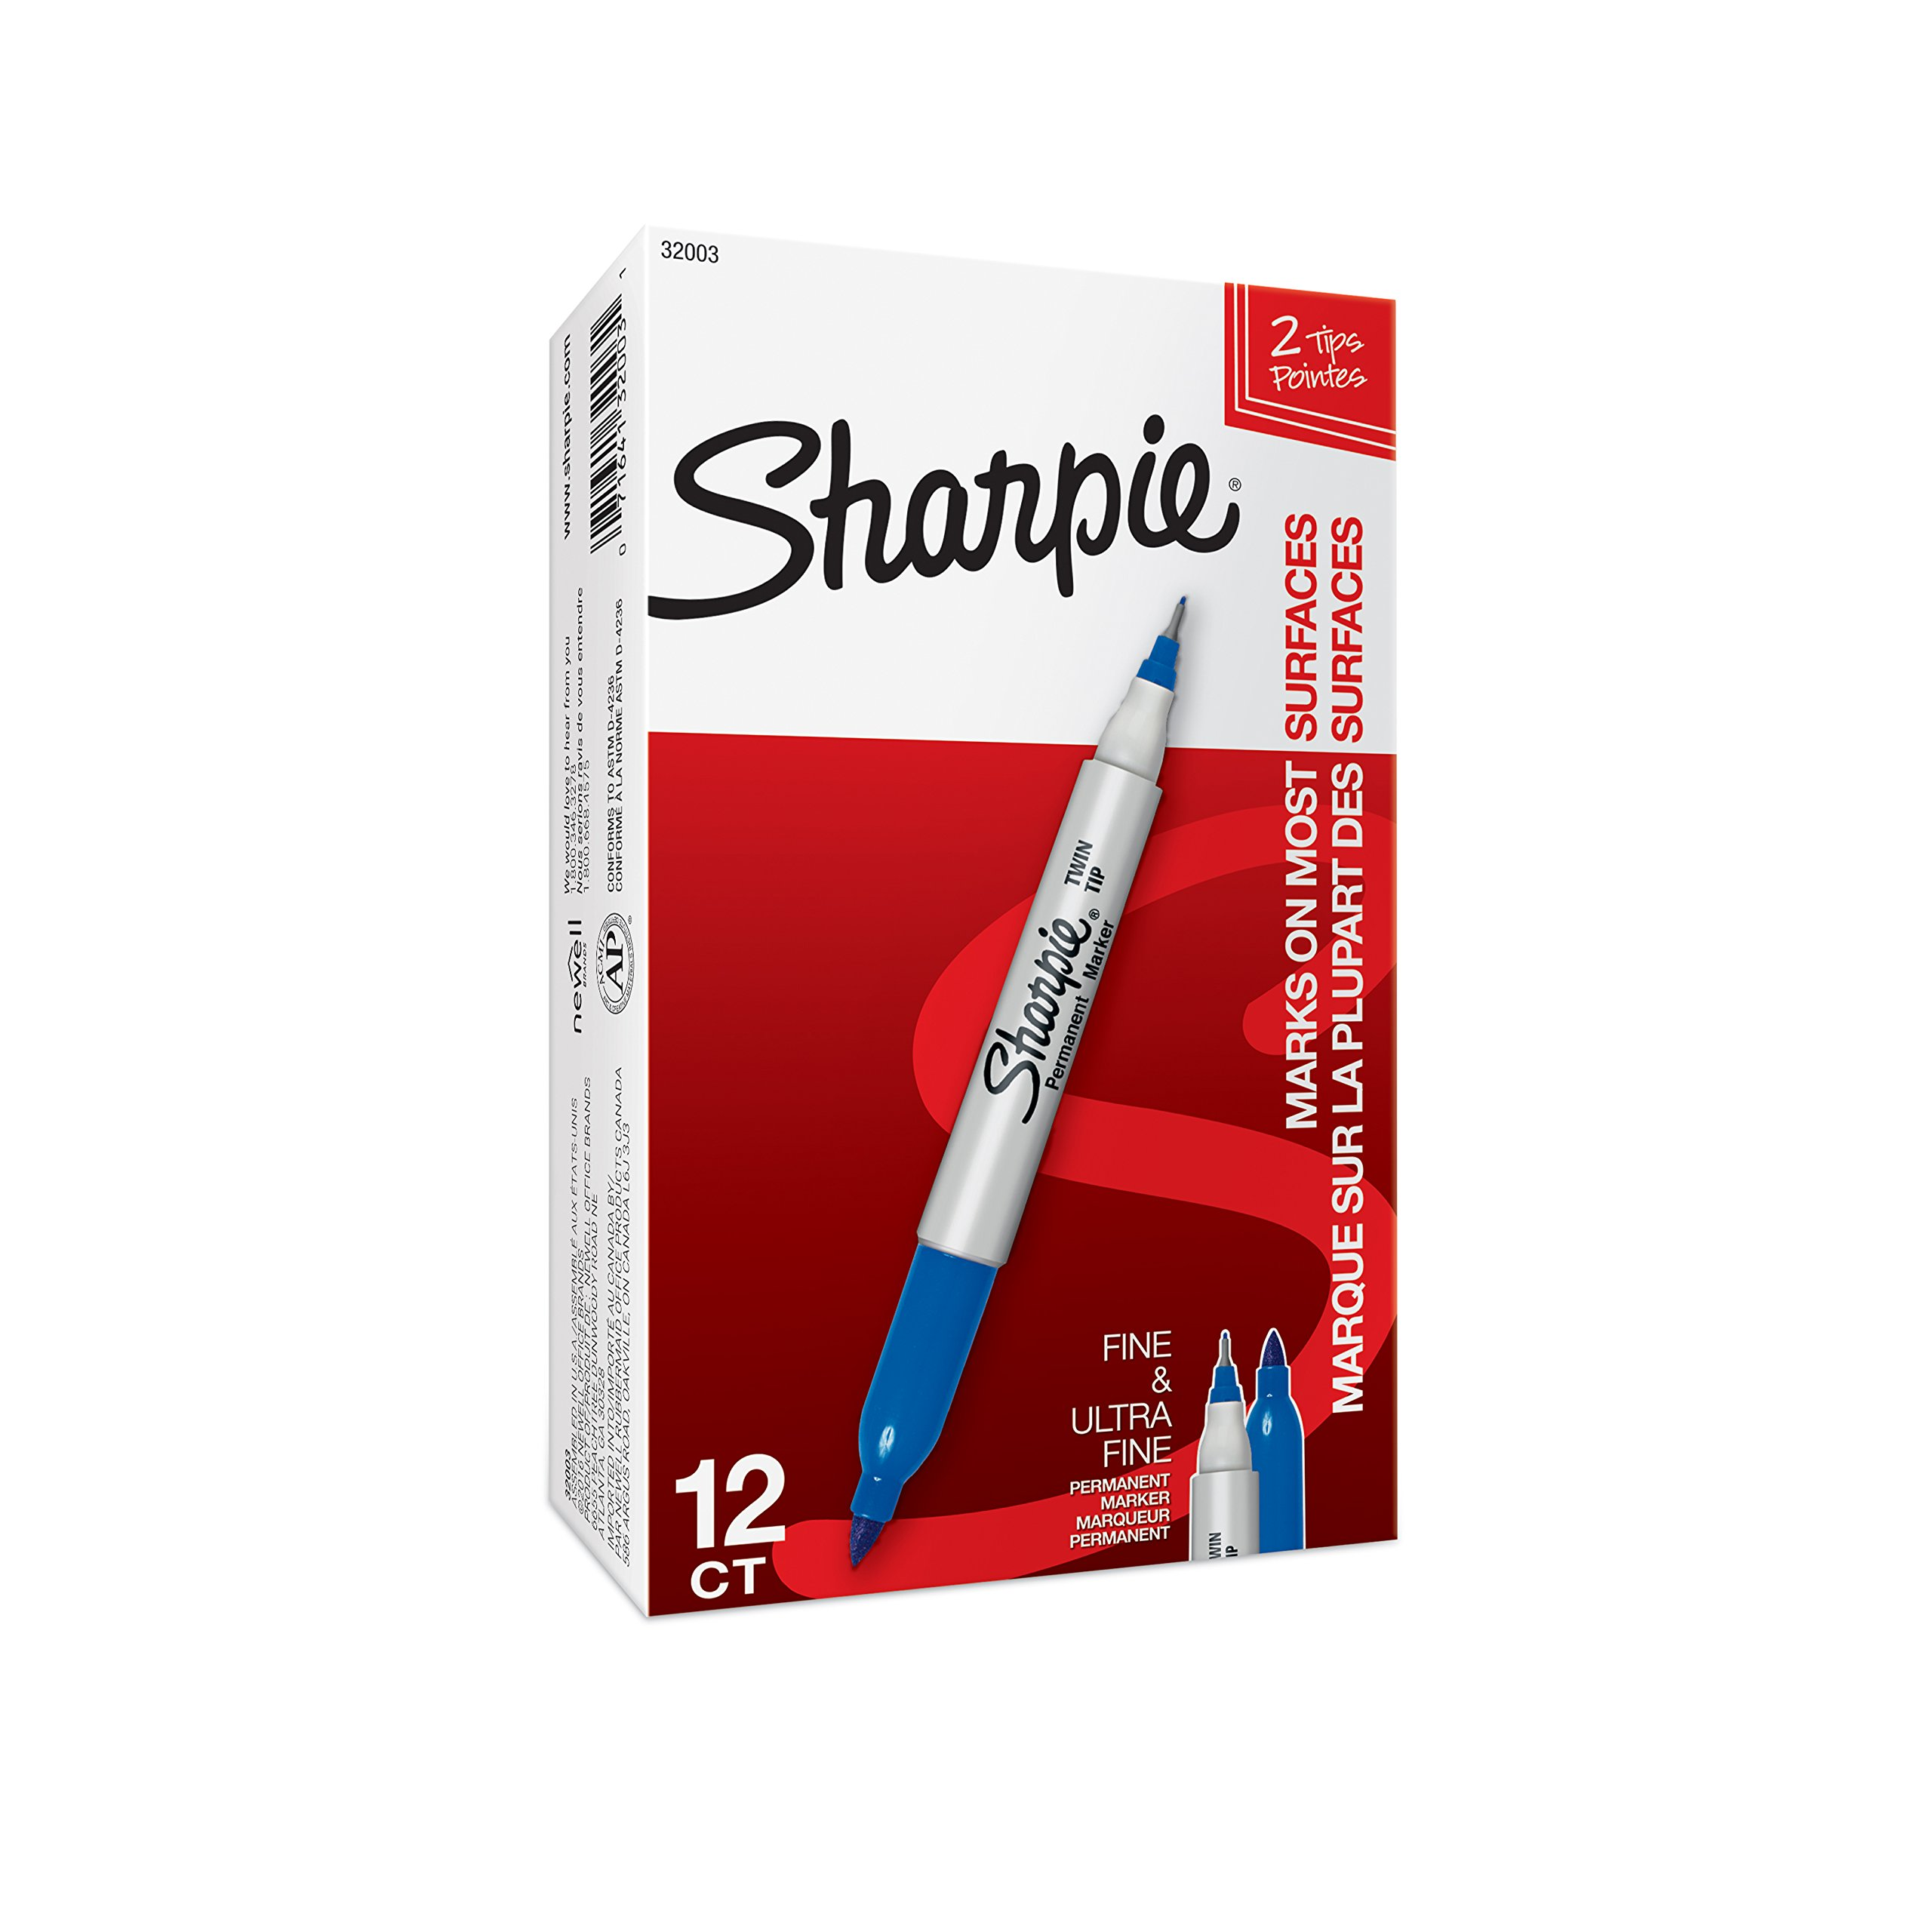 Berry Fine and Ultra Fine 12-Count Sharpie Twin-Tip Permanent Marker